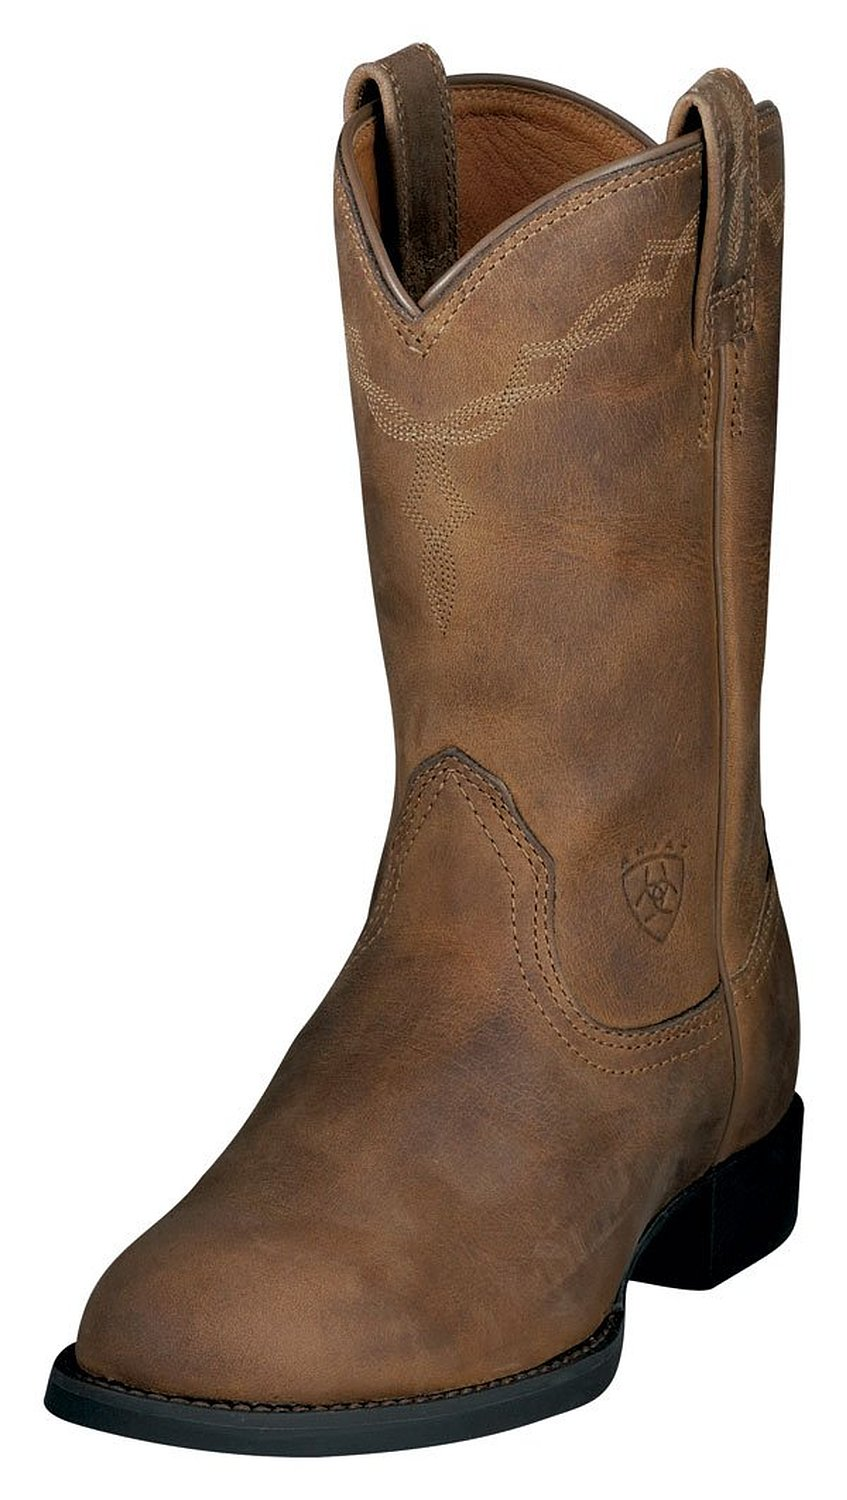 55cea43f2a4 Cheap Ariat Roper Boots, find Ariat Roper Boots deals on line at ...